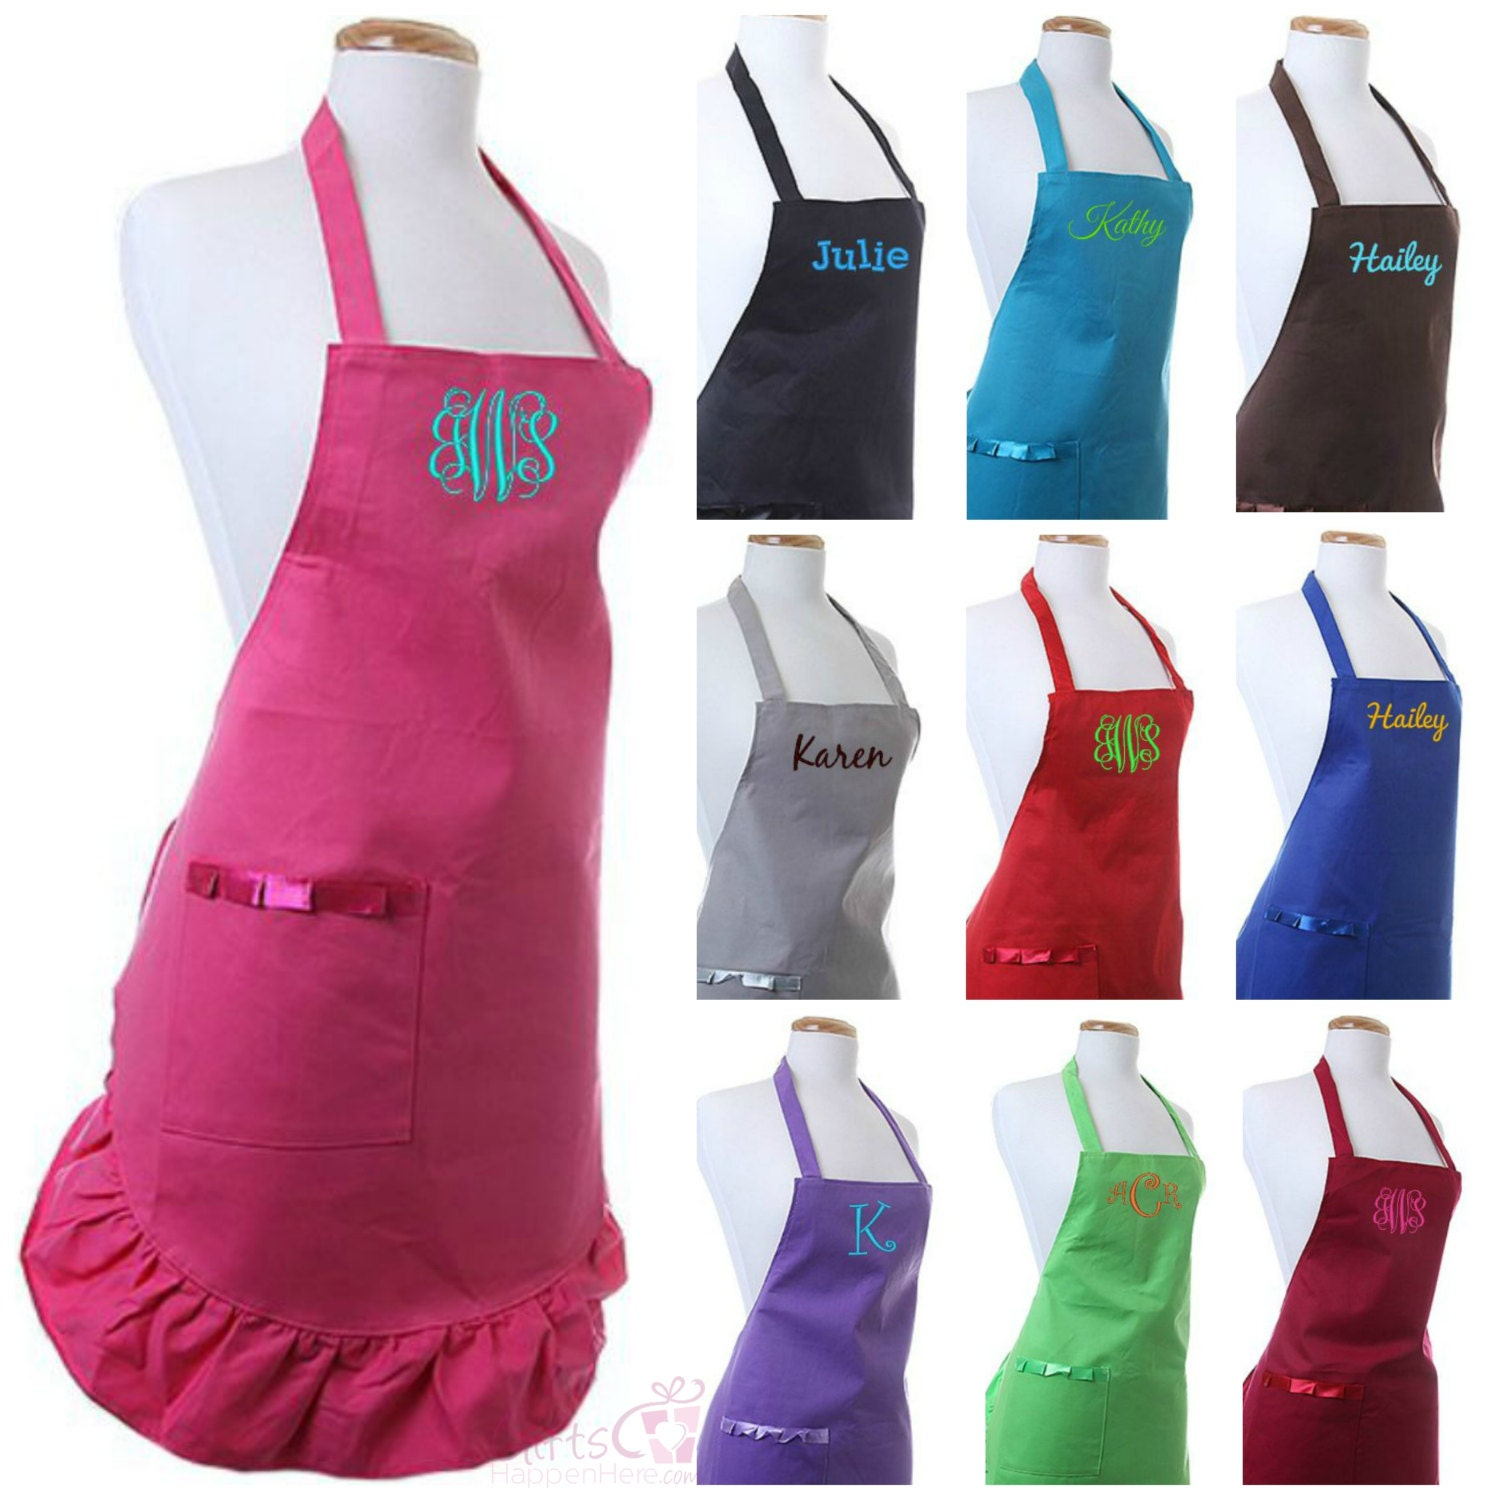 Personalized Apron Custom Monogrammed Embroidered Name Chef